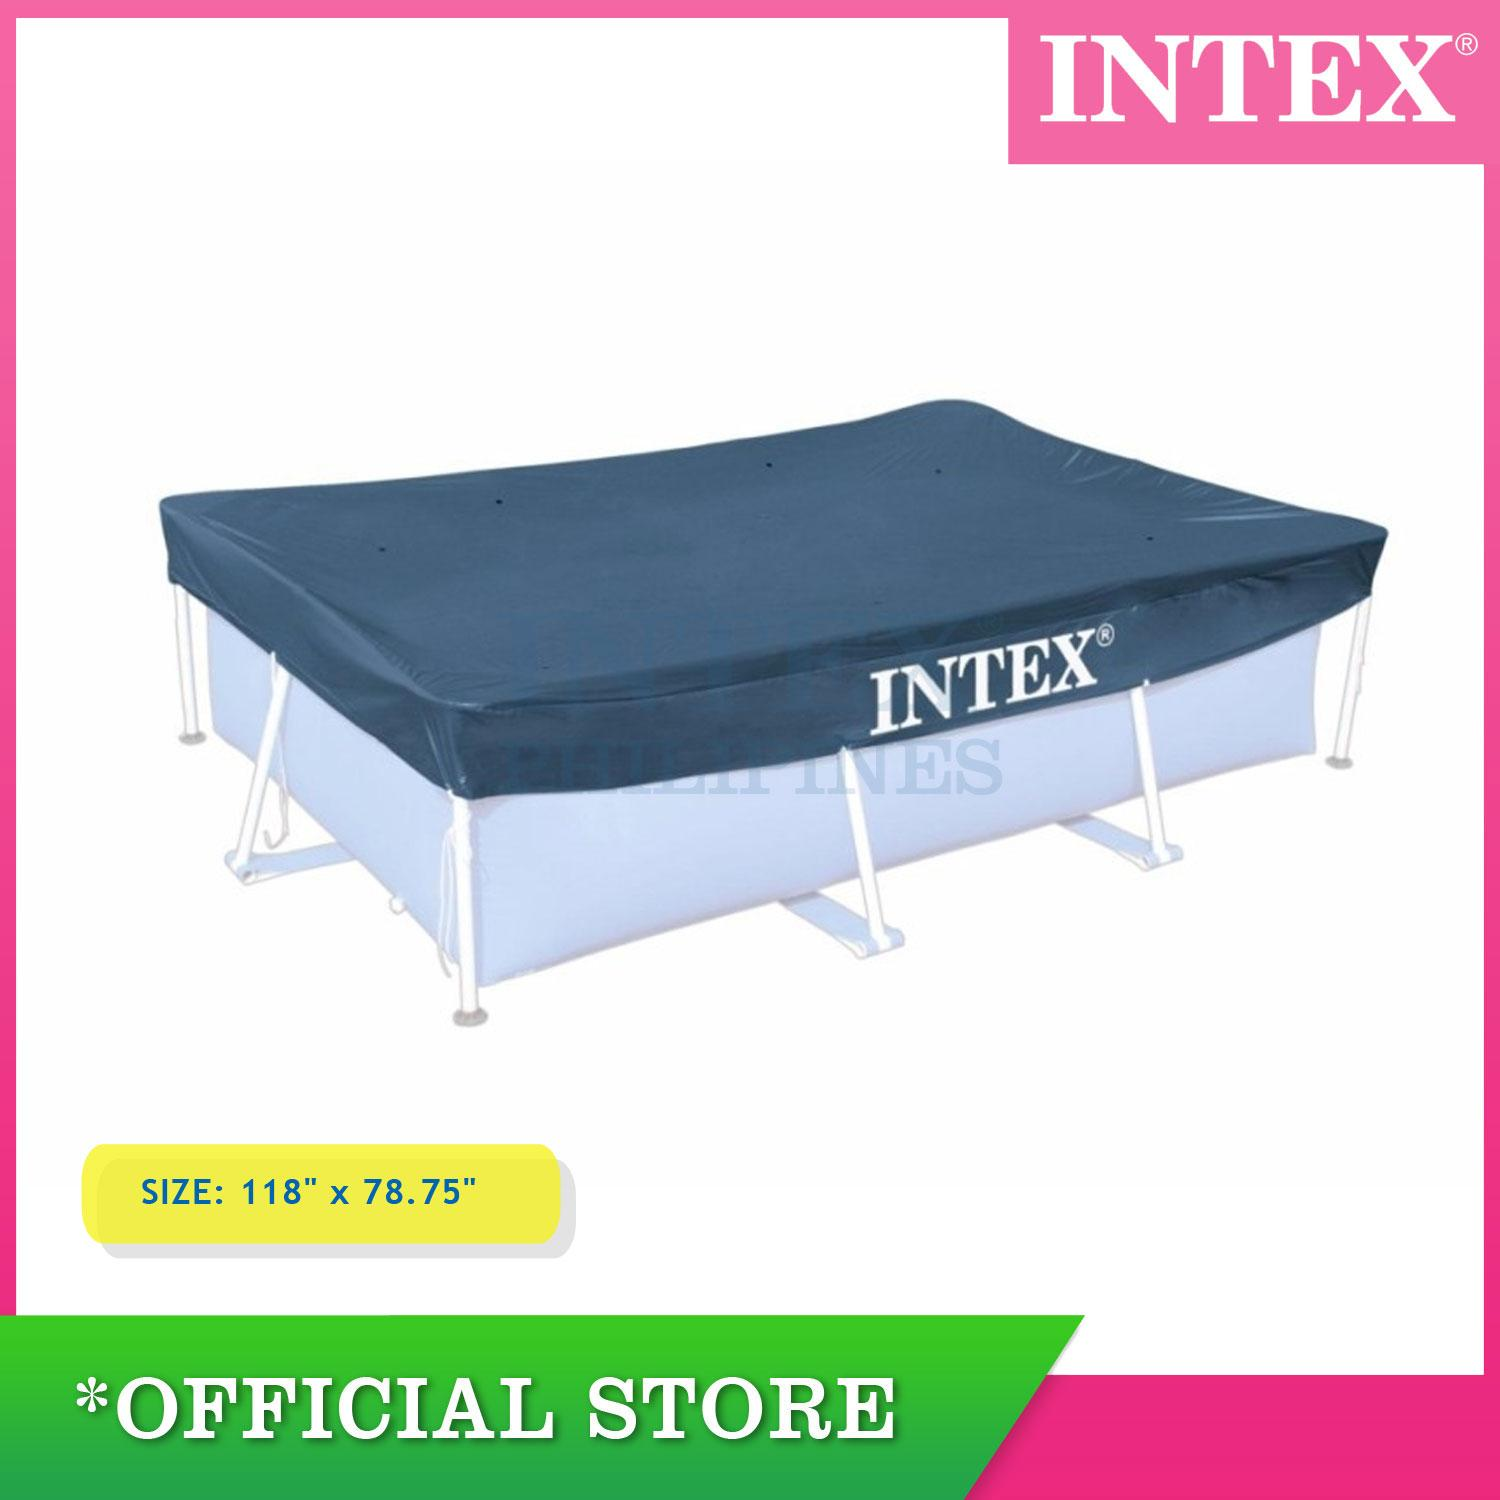 Pool Reinigungsset Intex Intex Pool Cover 3 00 M X 2 00 M 118